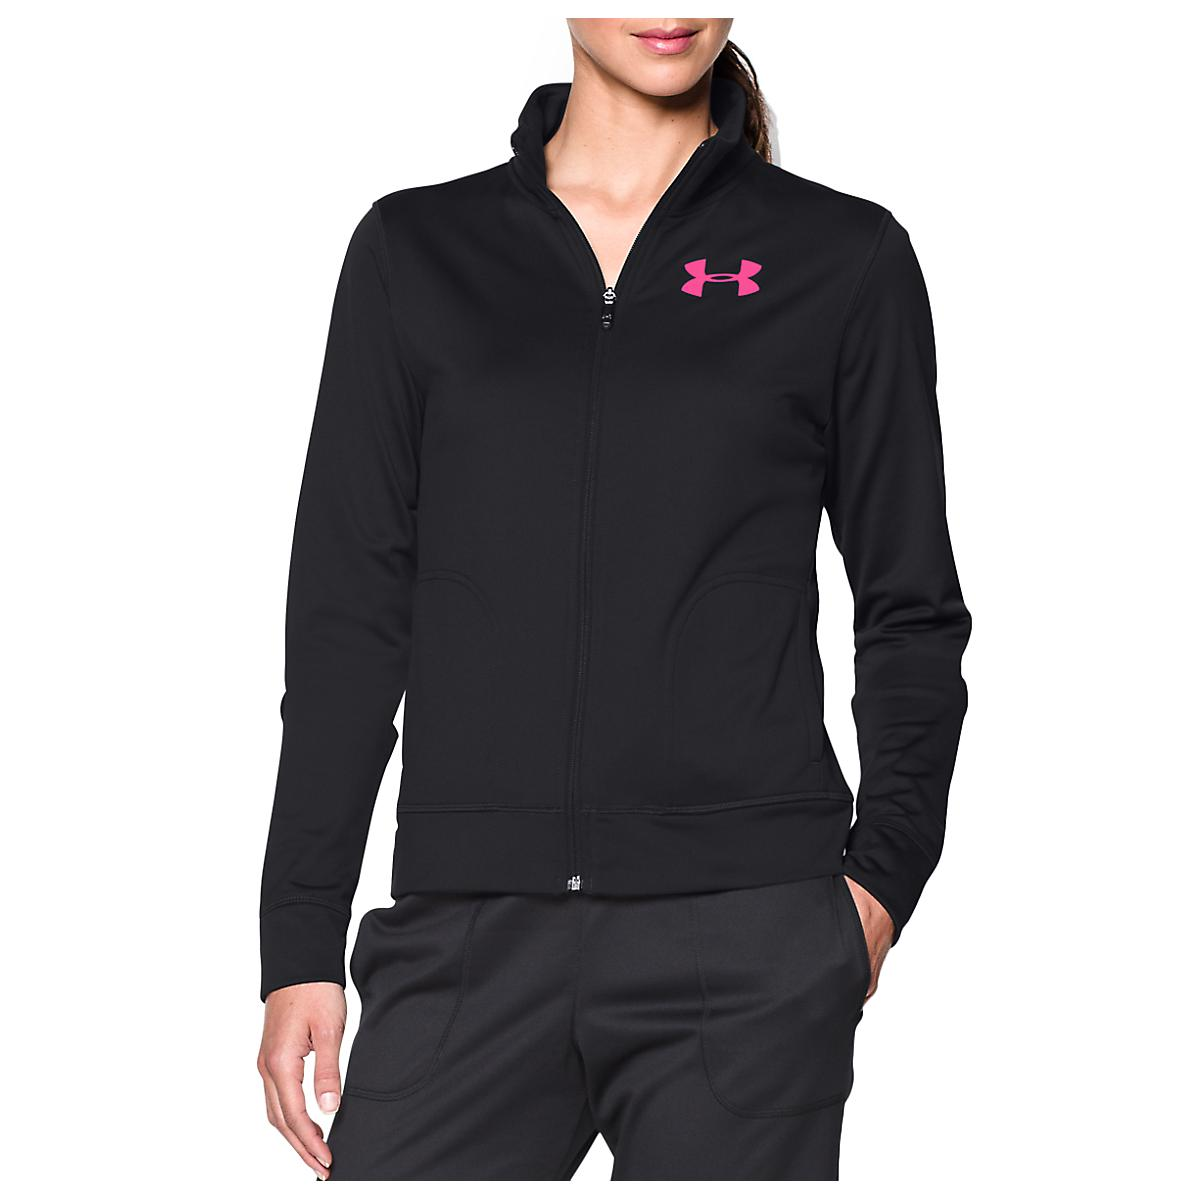 Women's Under Armour�Rival Jacket